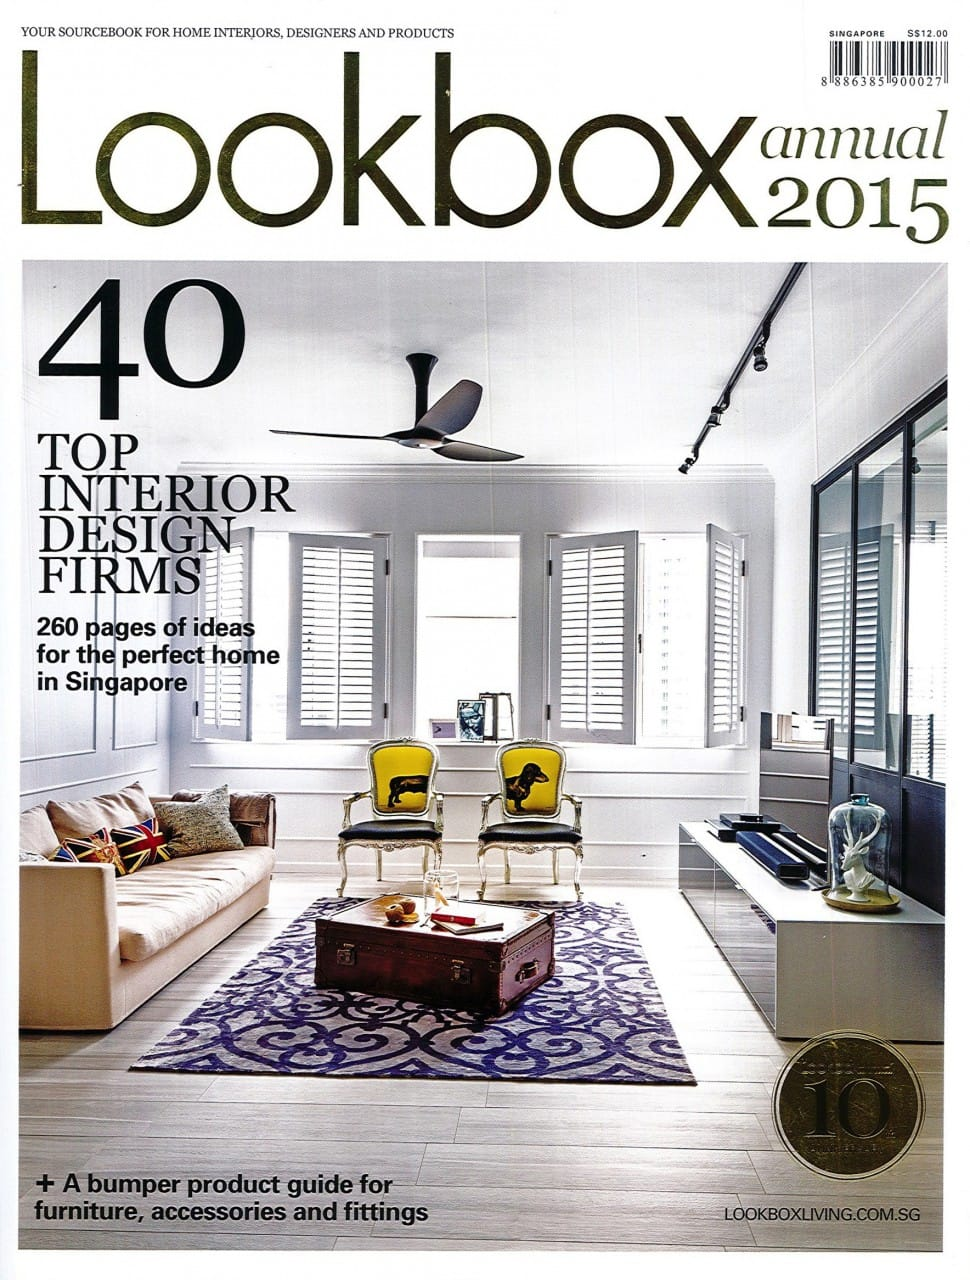 Lookbox Annual 2015